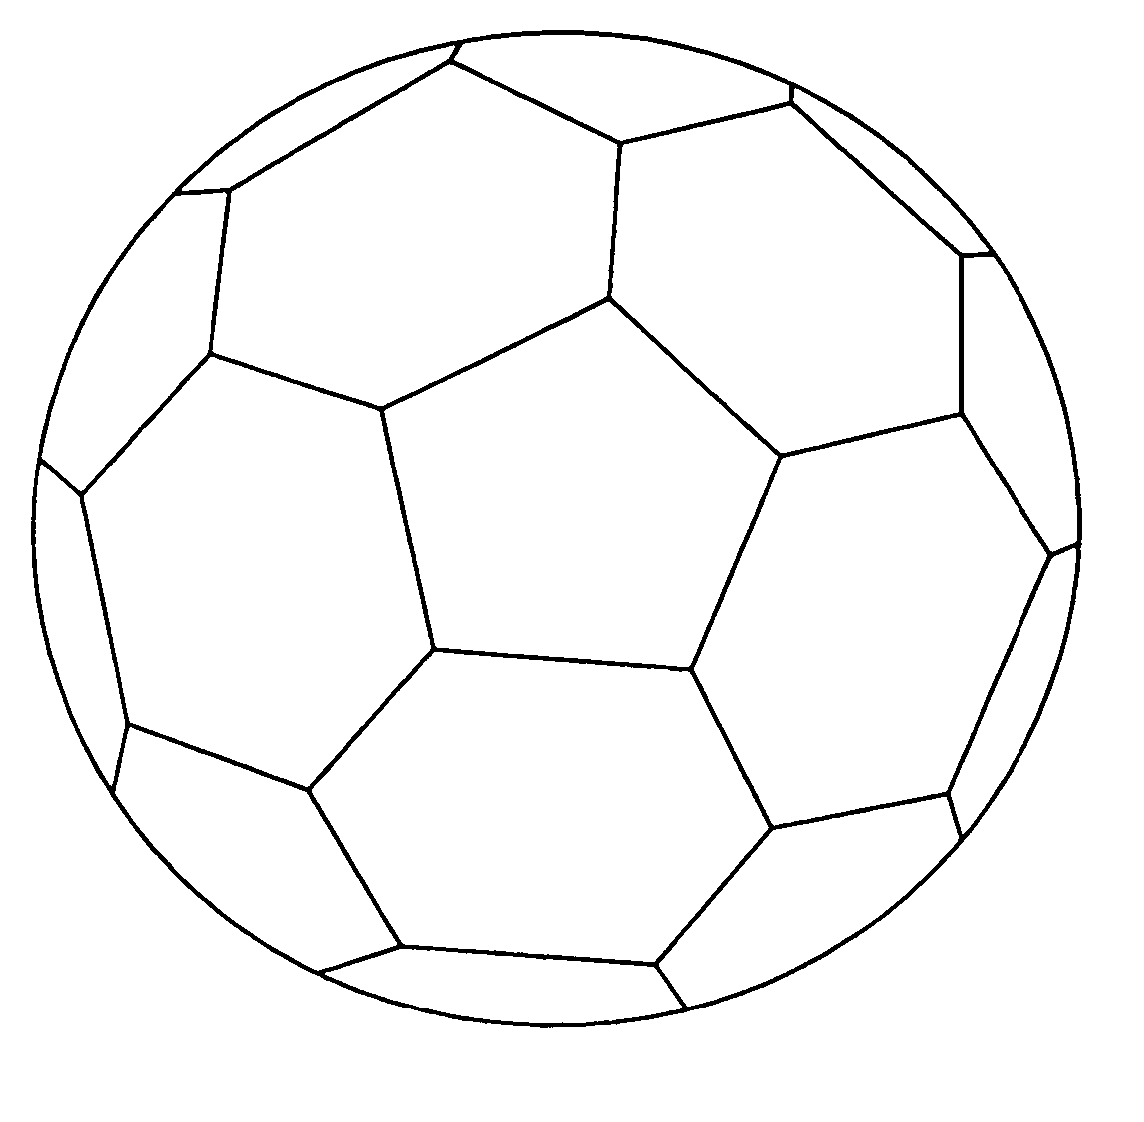 Free Printable Soccer Ball Coloring Page Cool - Coloring Pages ...